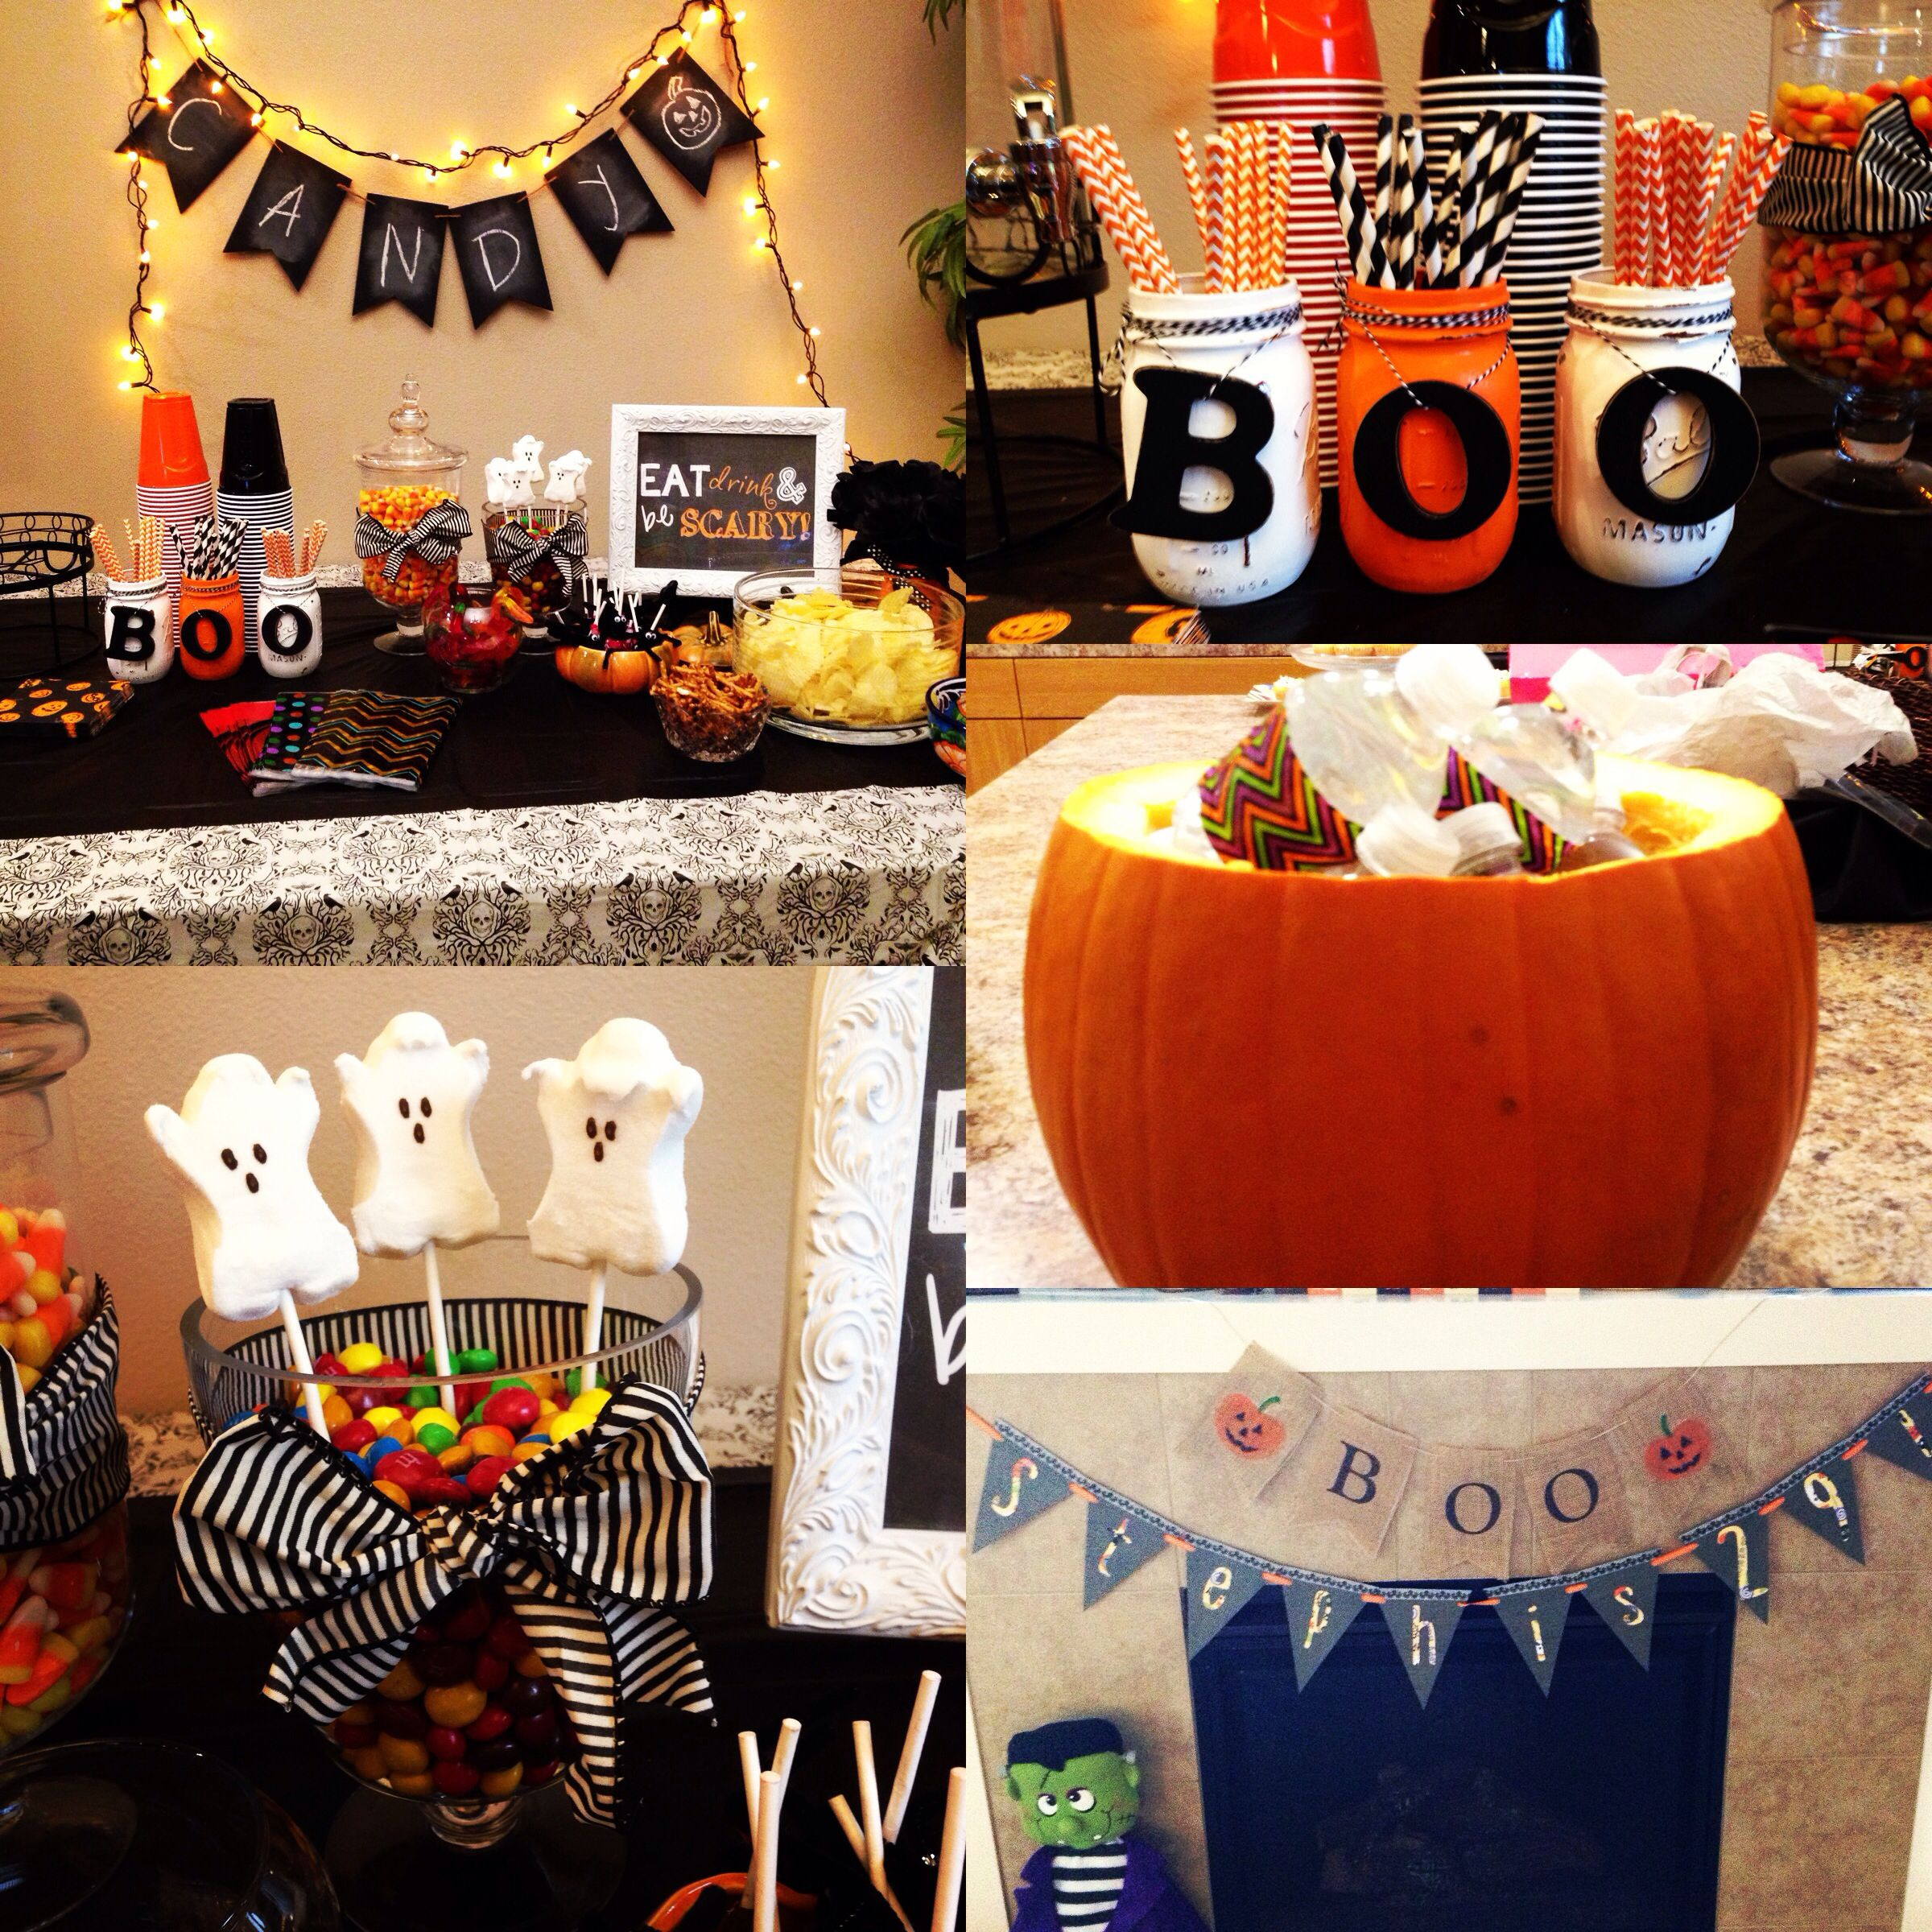 Best ideas about Halloween Theme Birthday Party . Save or Pin Best 25 Halloween birthday decorations ideas on Pinterest Now.